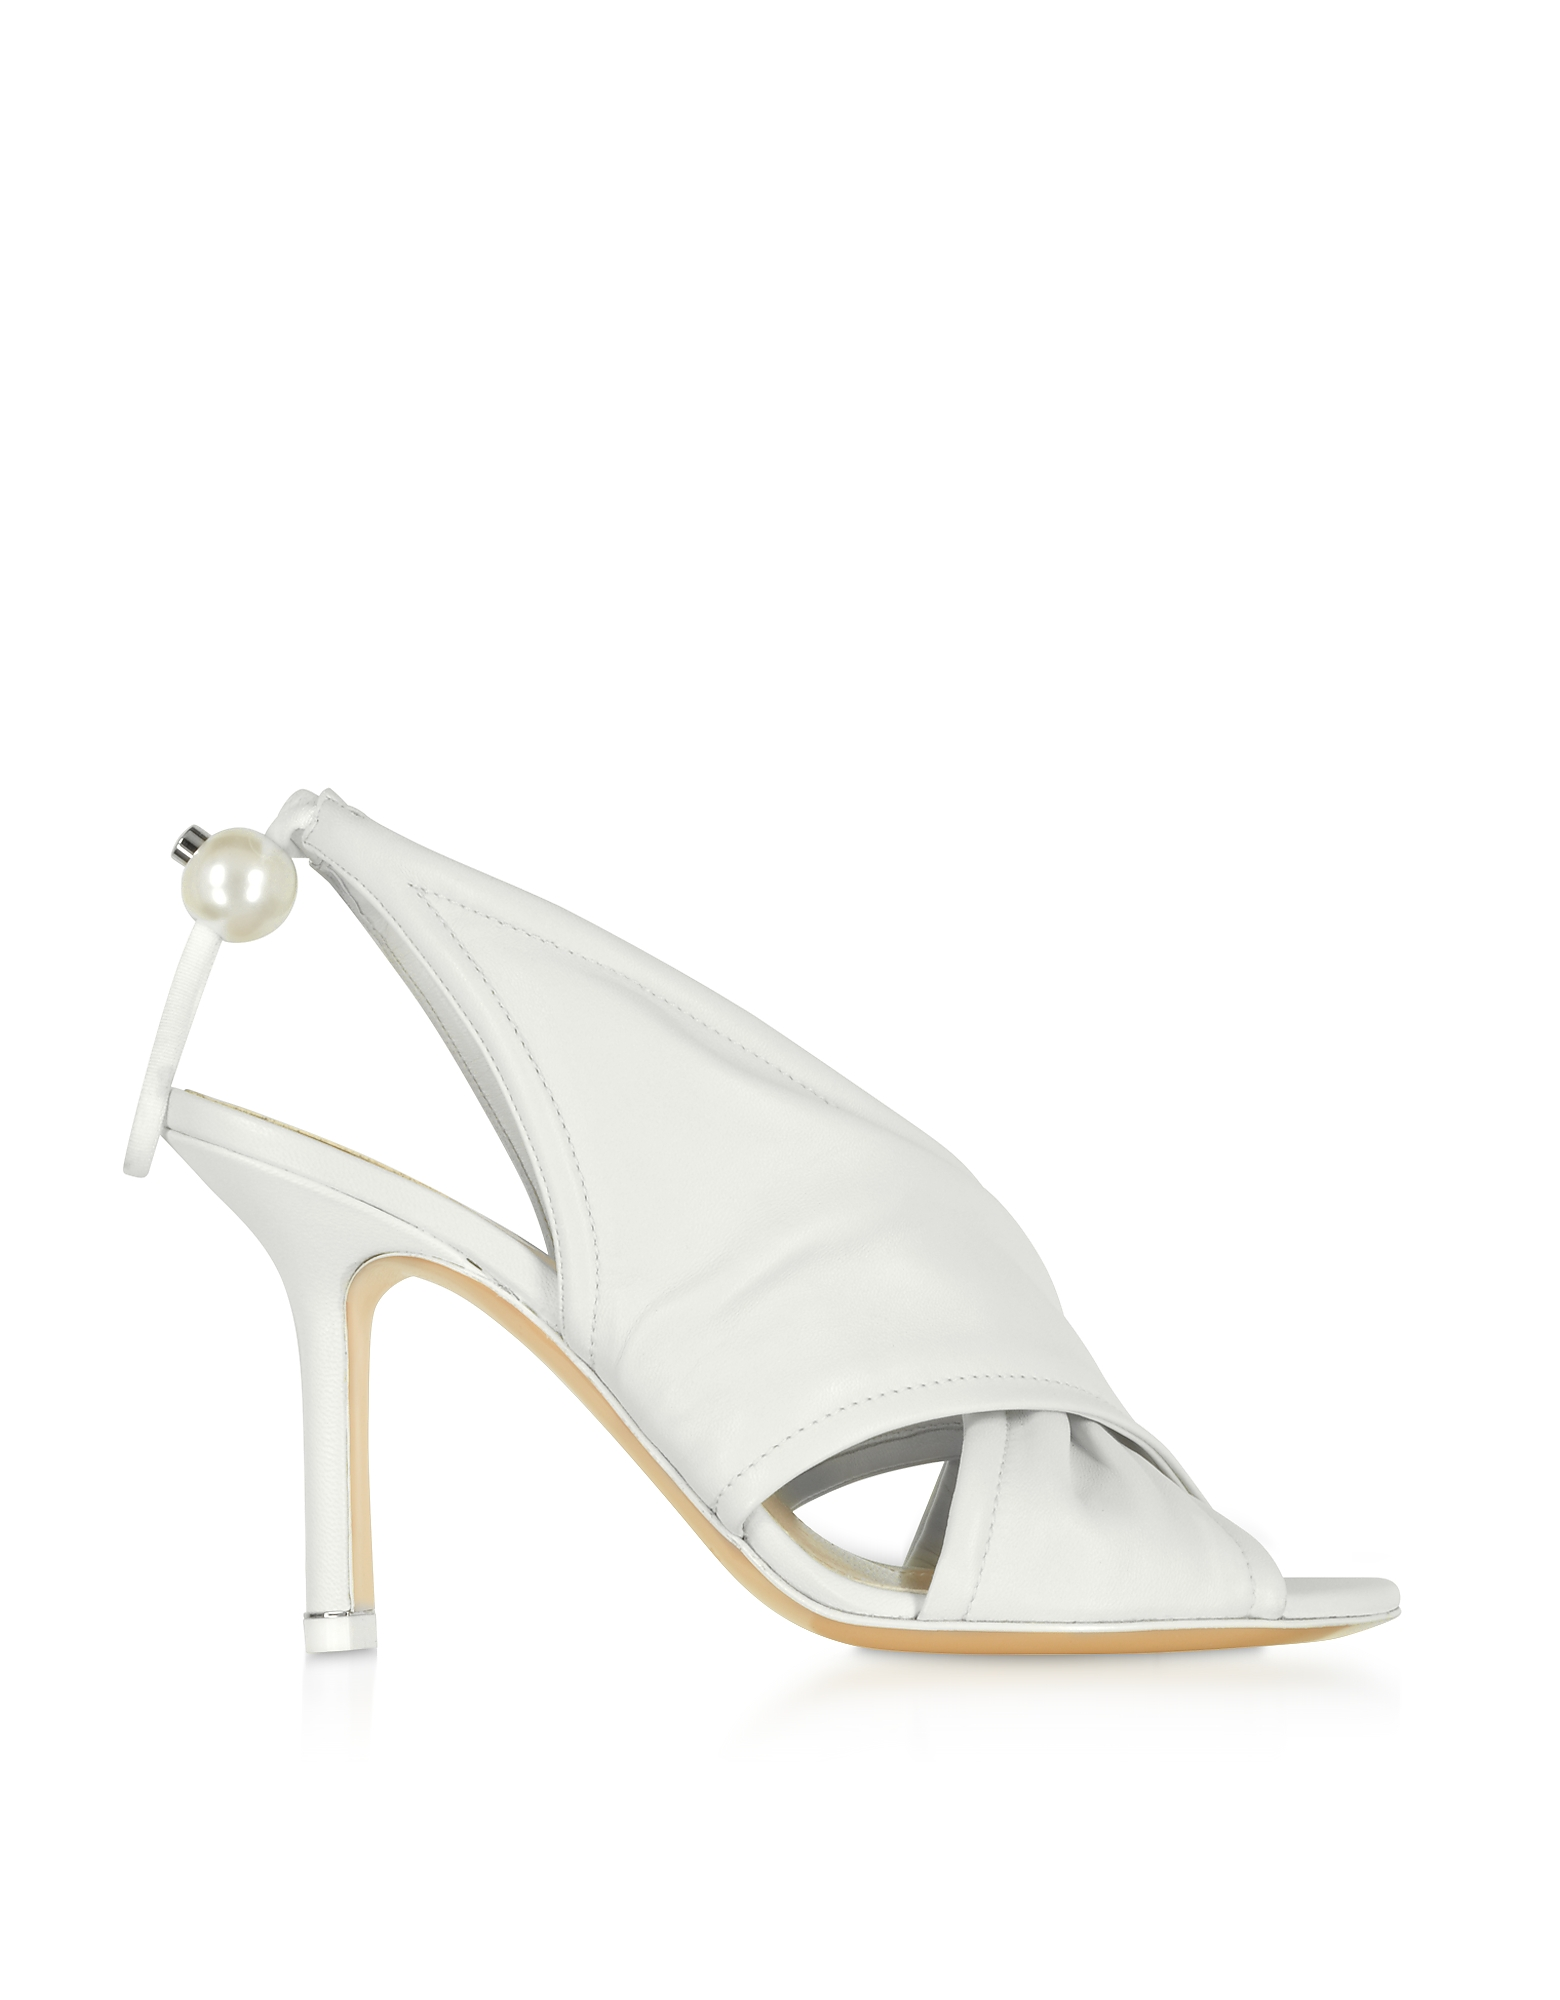 Nicholas Kirkwood Designer Shoes, White Nappa 90mm Delfi Sandals